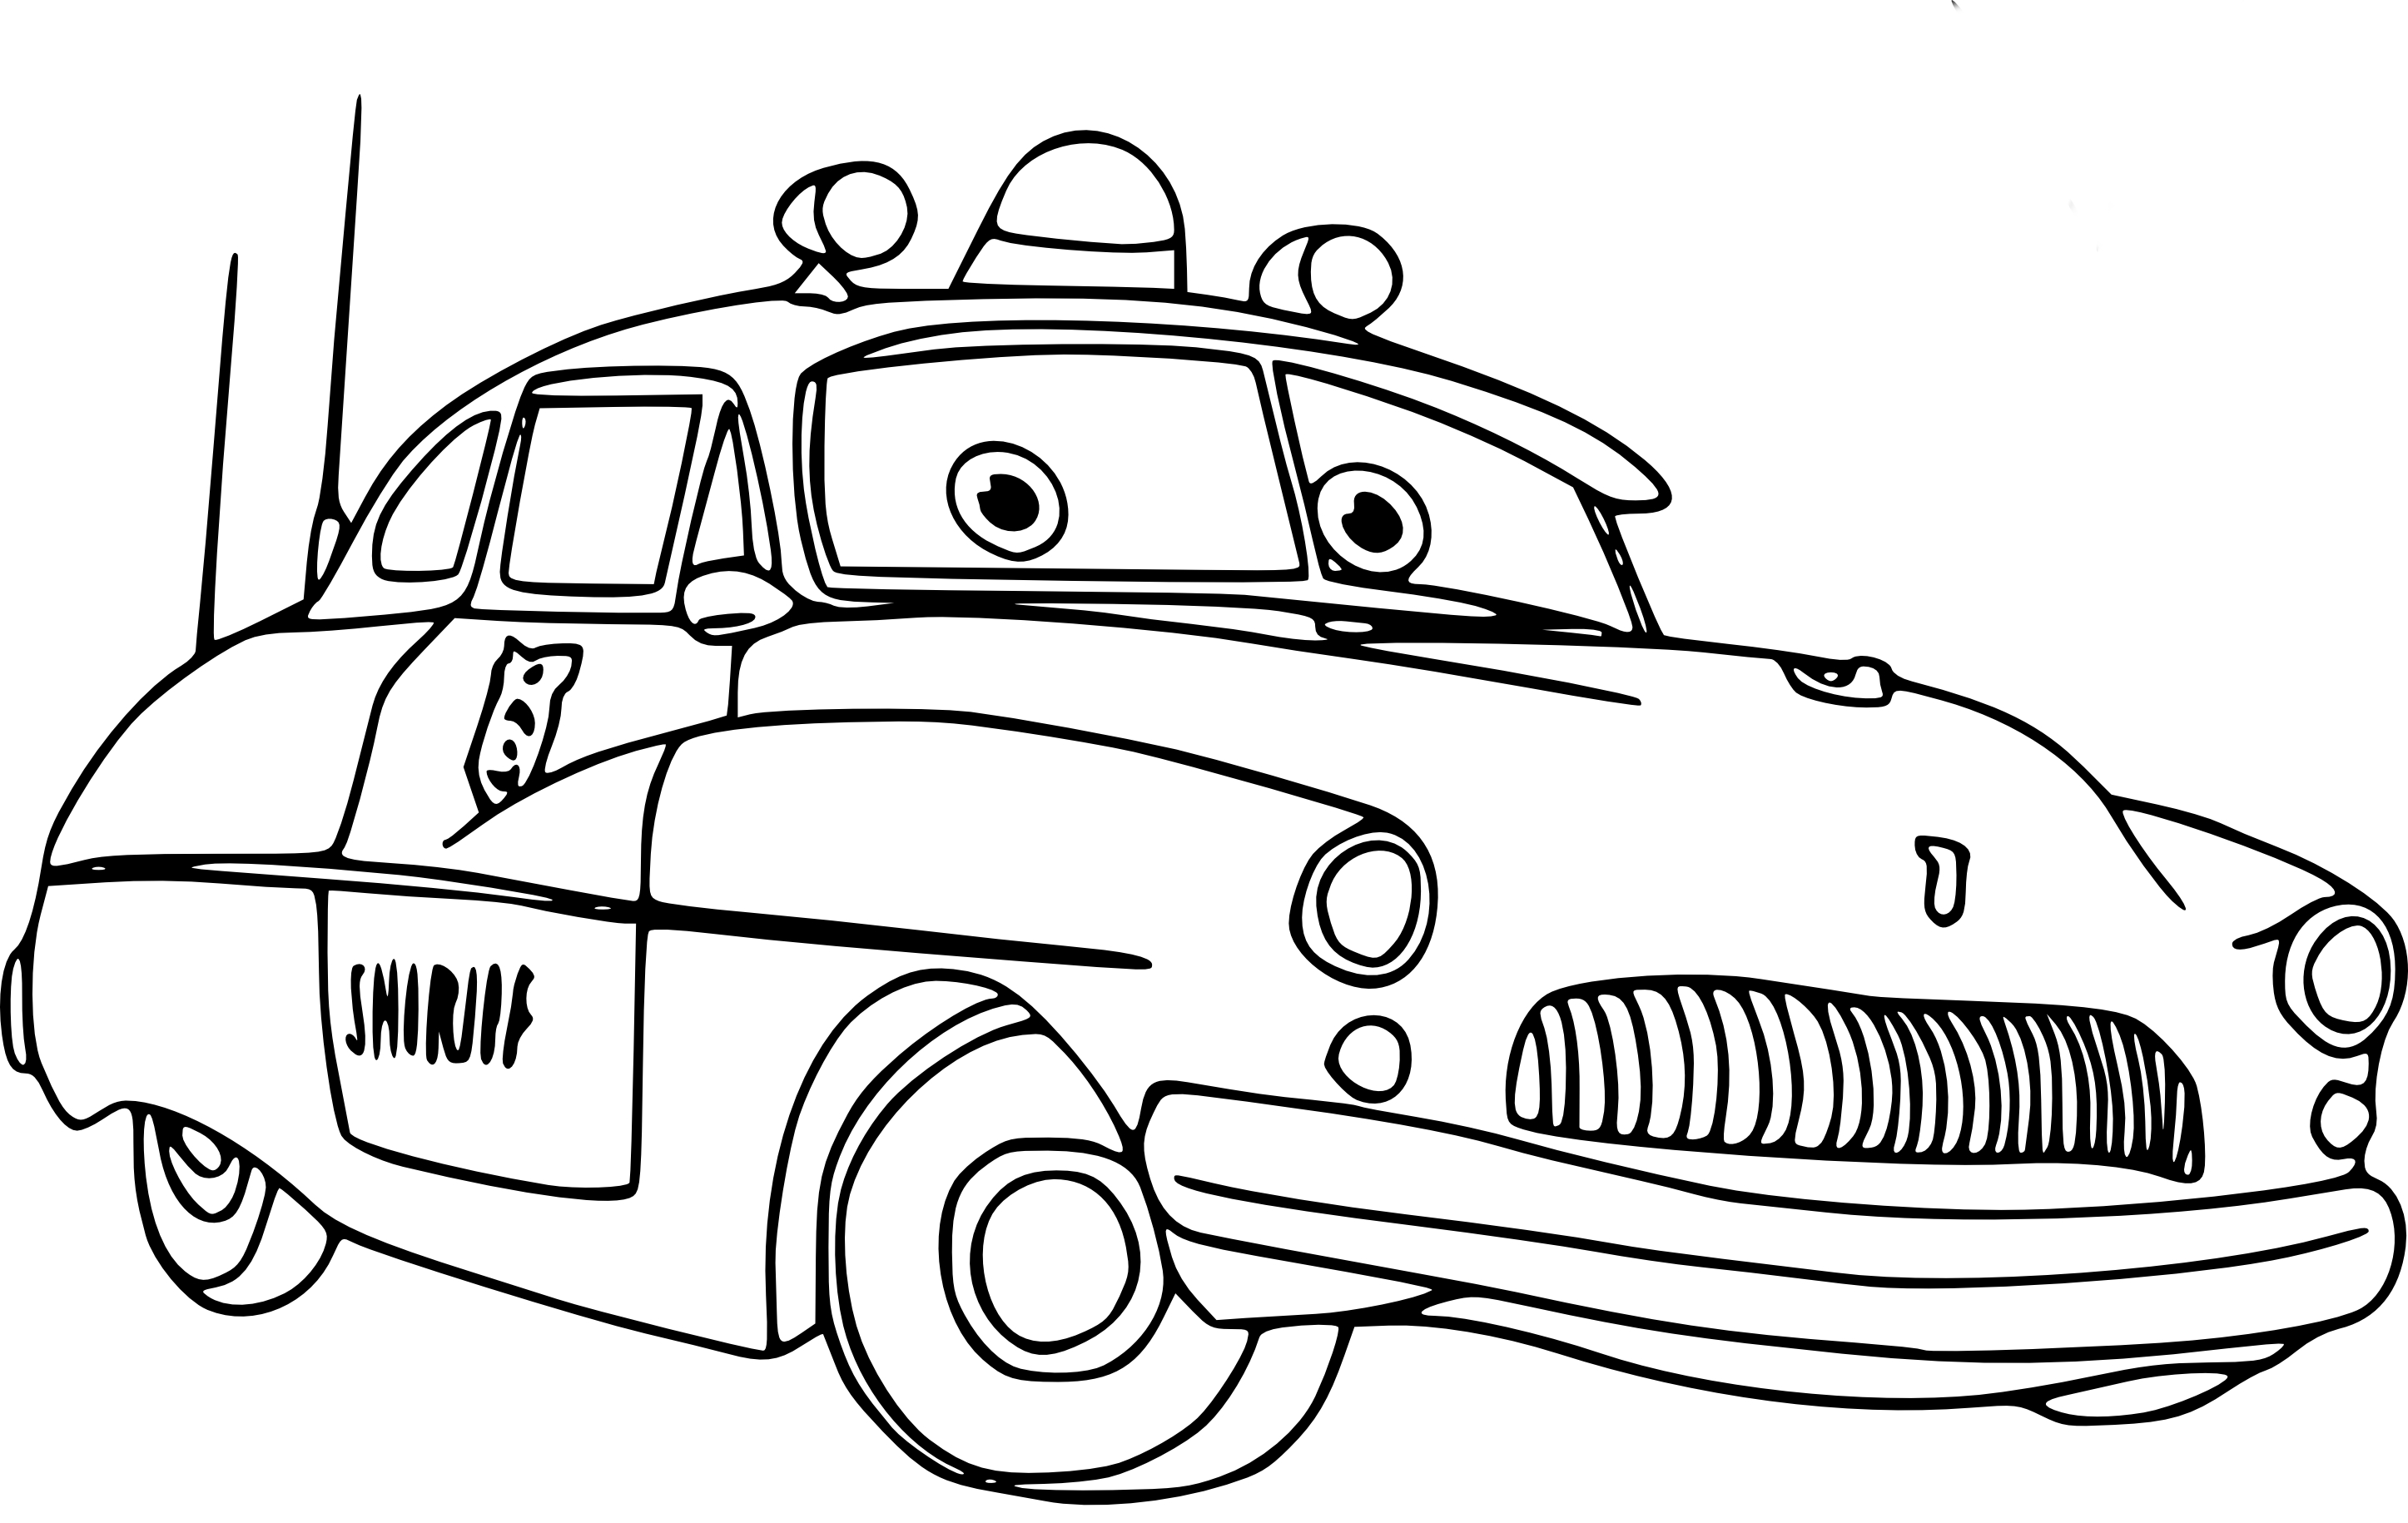 A 98750439 moreover Proline Subsill Am5ex further Coloriage Sheriff Cars moreover Floral Garland Svg Flower Borders Frames Floral Garland Laurels Ribbons Clip Art Vector Birthday Card Party Stationery Table Card Wedding Invitation From Home Interior Design Pictures besides 1791361 Lt1 Overheating Solved. on radiator